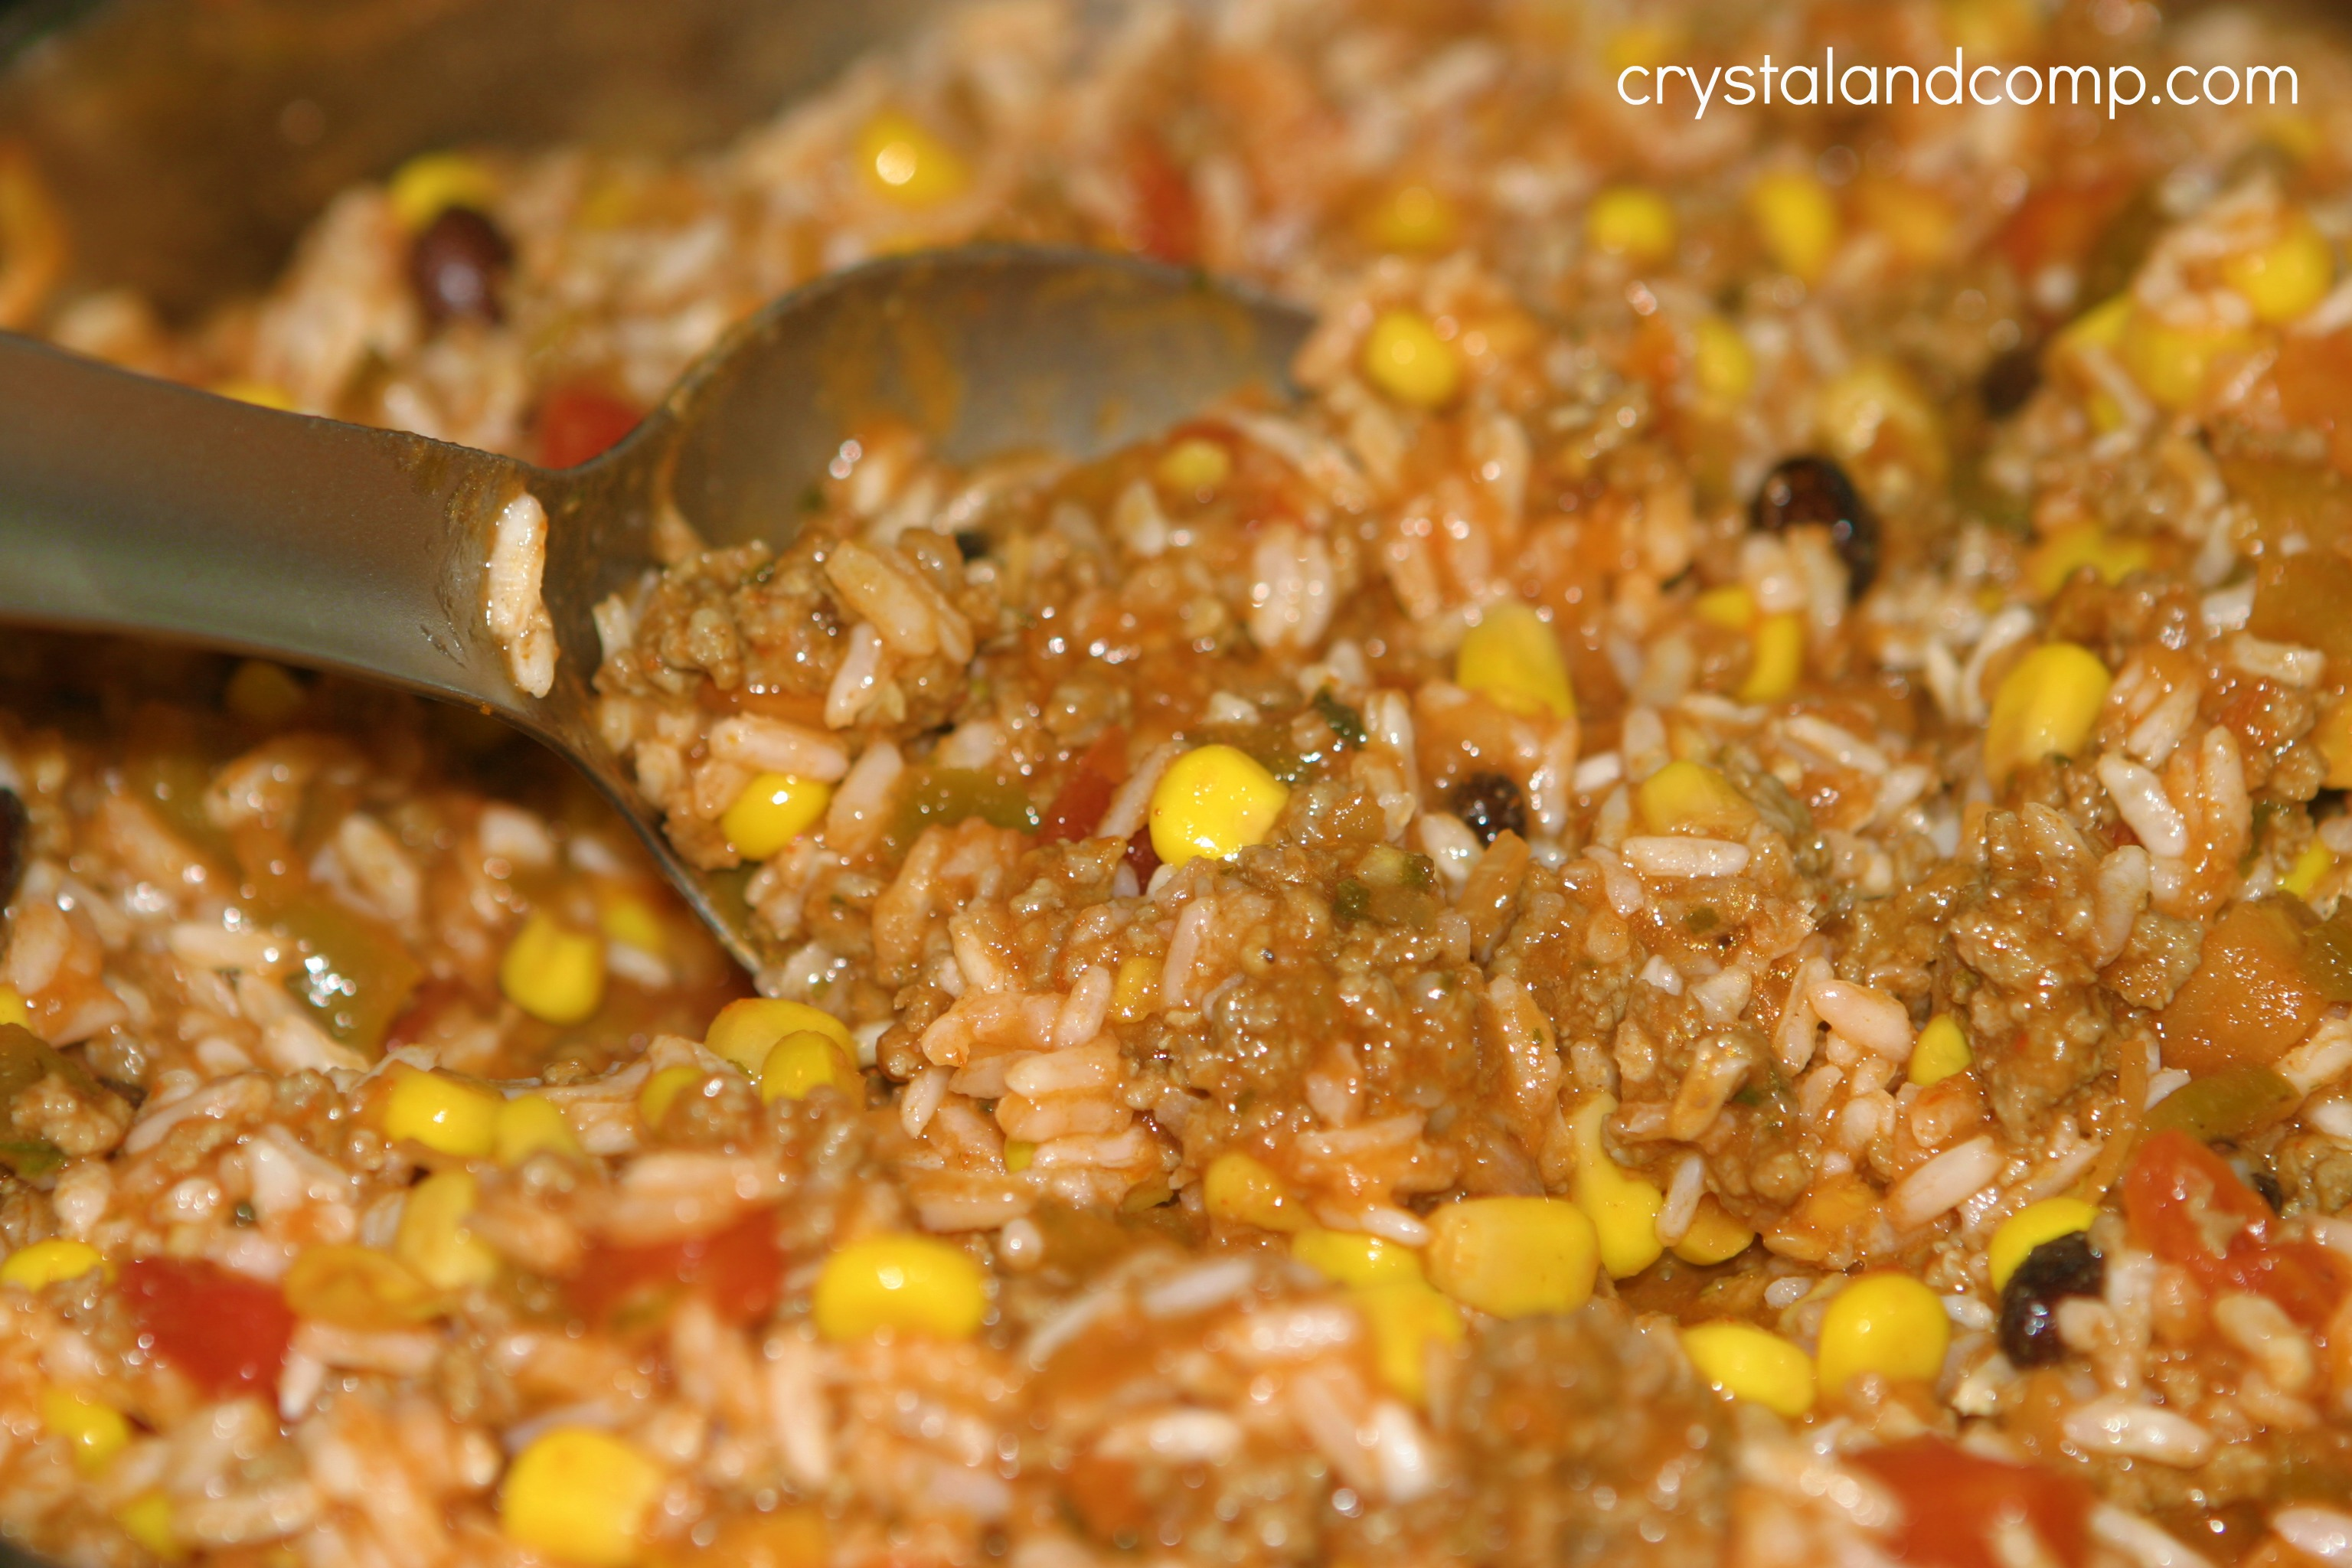 Easy recipes beefy mexican rice a family recipe crystalandcomp beef recipes forumfinder Choice Image